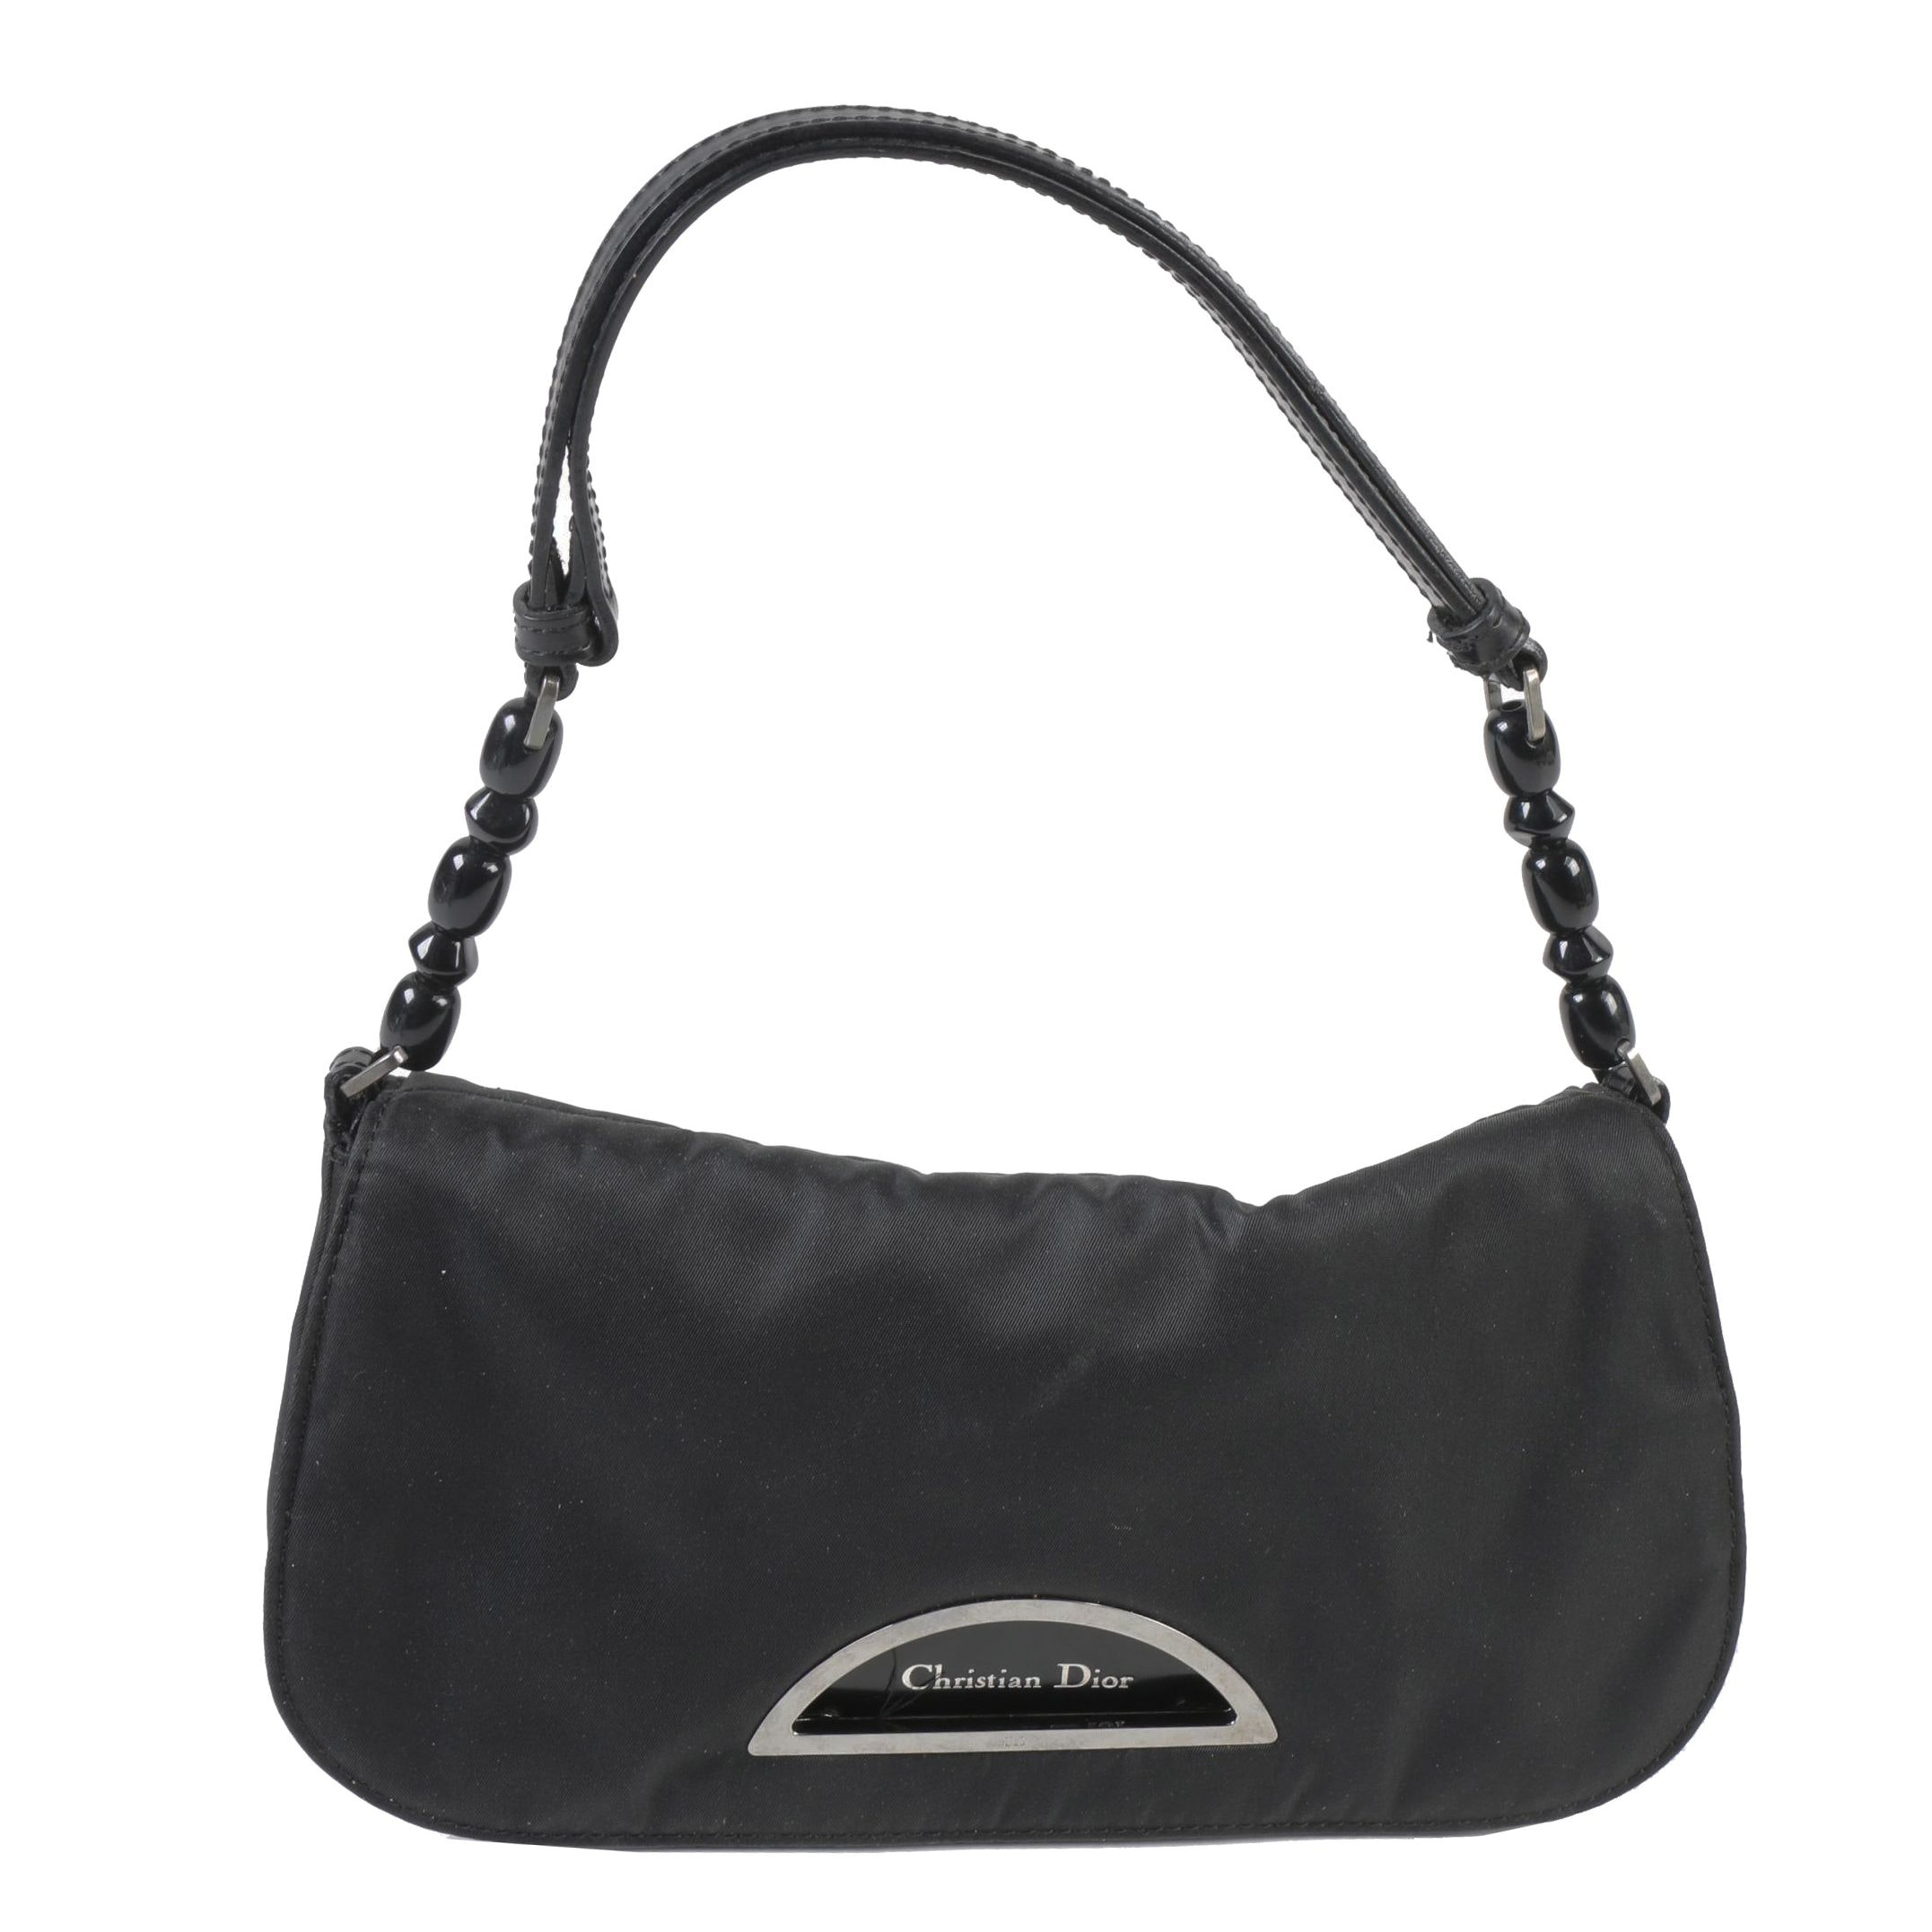 Christian Dior Black Satin and Leather Malice Shoulder Bag